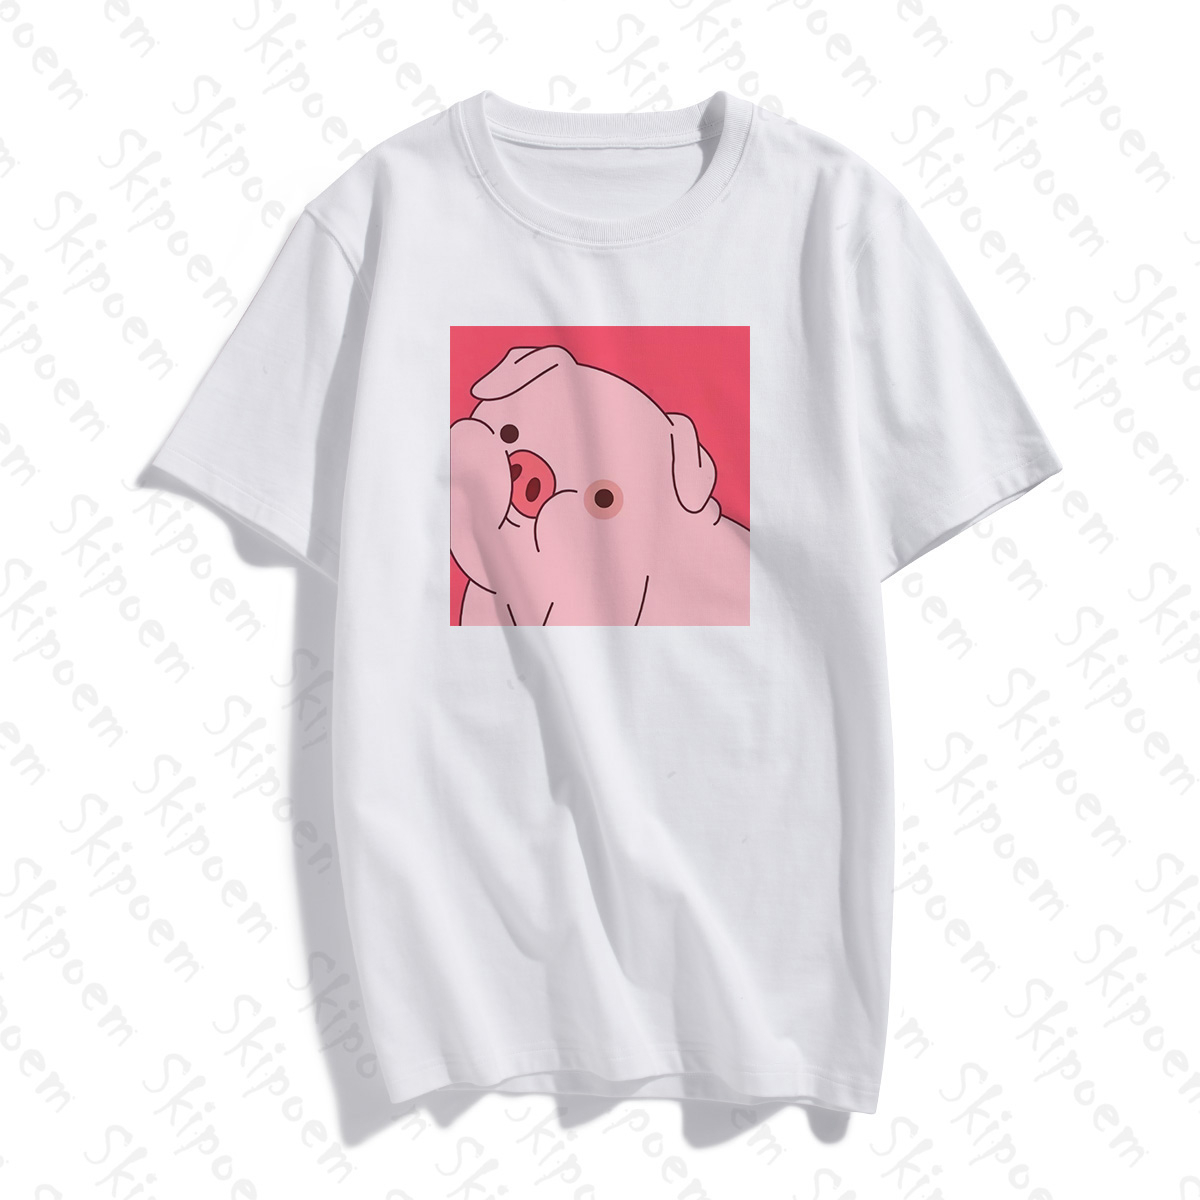 Kawaii Pink Pig T Shirt Women Vintage Harajuku Aesthetic Tumblr Korean Style Cotton Short Sleeve Plus Size Clothes Streetwear